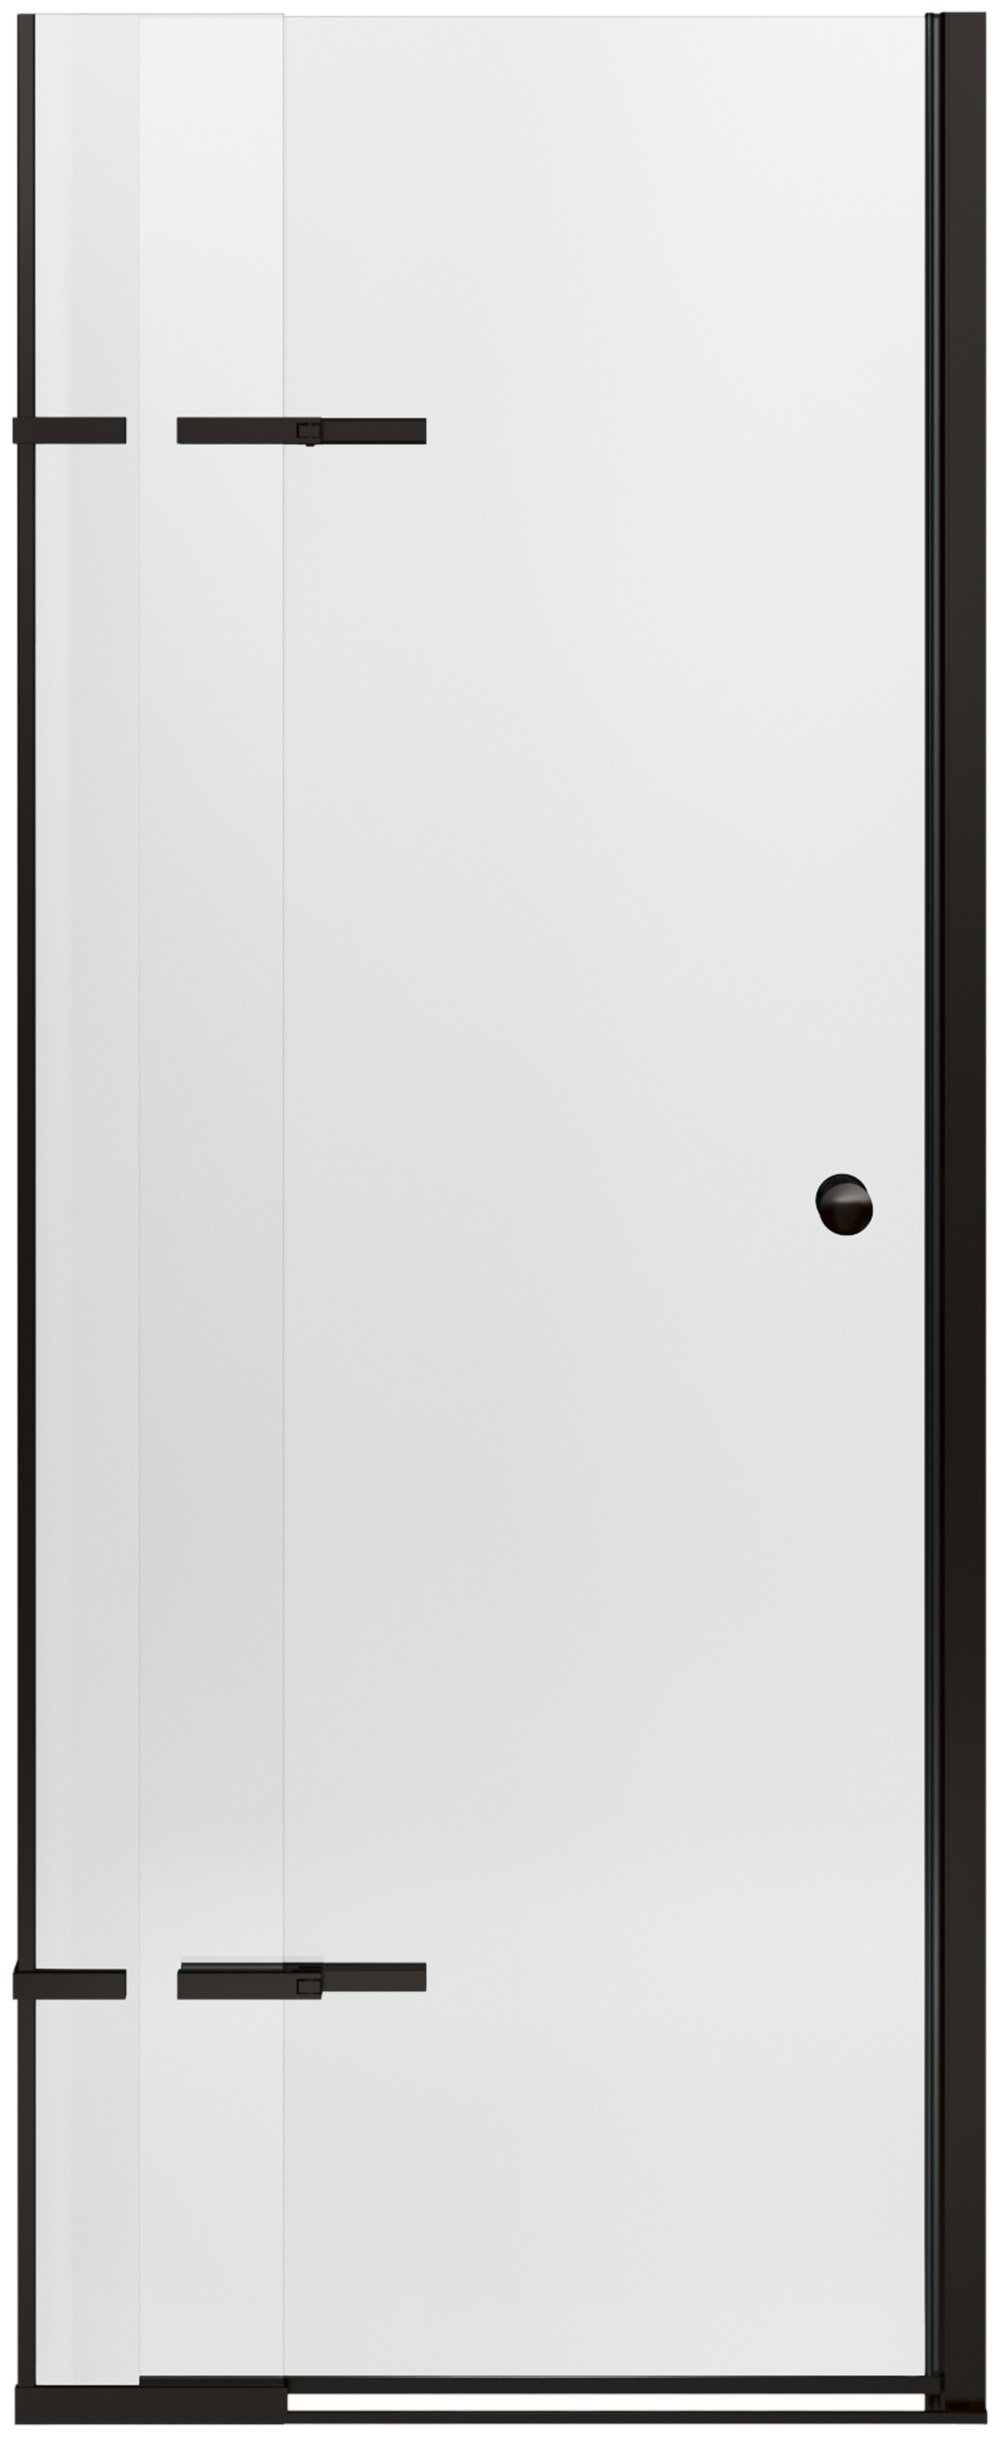 KOHLER K-709032-L-ABZ Underline Pivoting Shower Door, 69-1/2'' H x 28 to 31'' Width with Adjustable Hinges and 1/4'' Thick Crystal Clear Glass, Anodized Dark Bronze